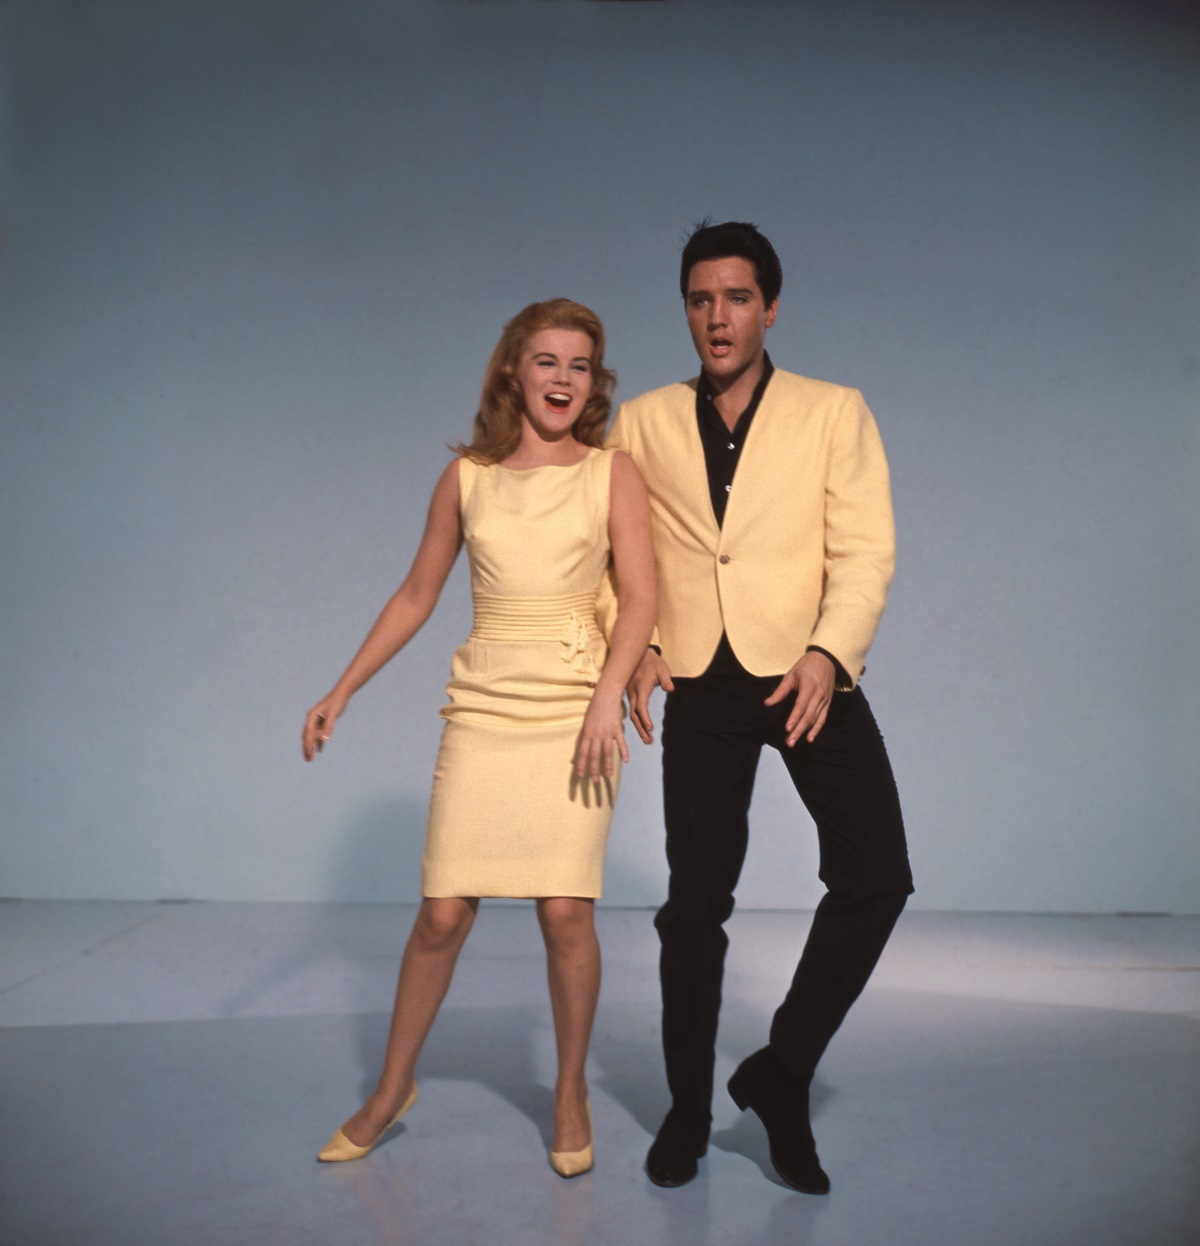 Ann-Margret and Elvis Presley smiling and dancing in a color promotional still from 'Viva Las Vegas'